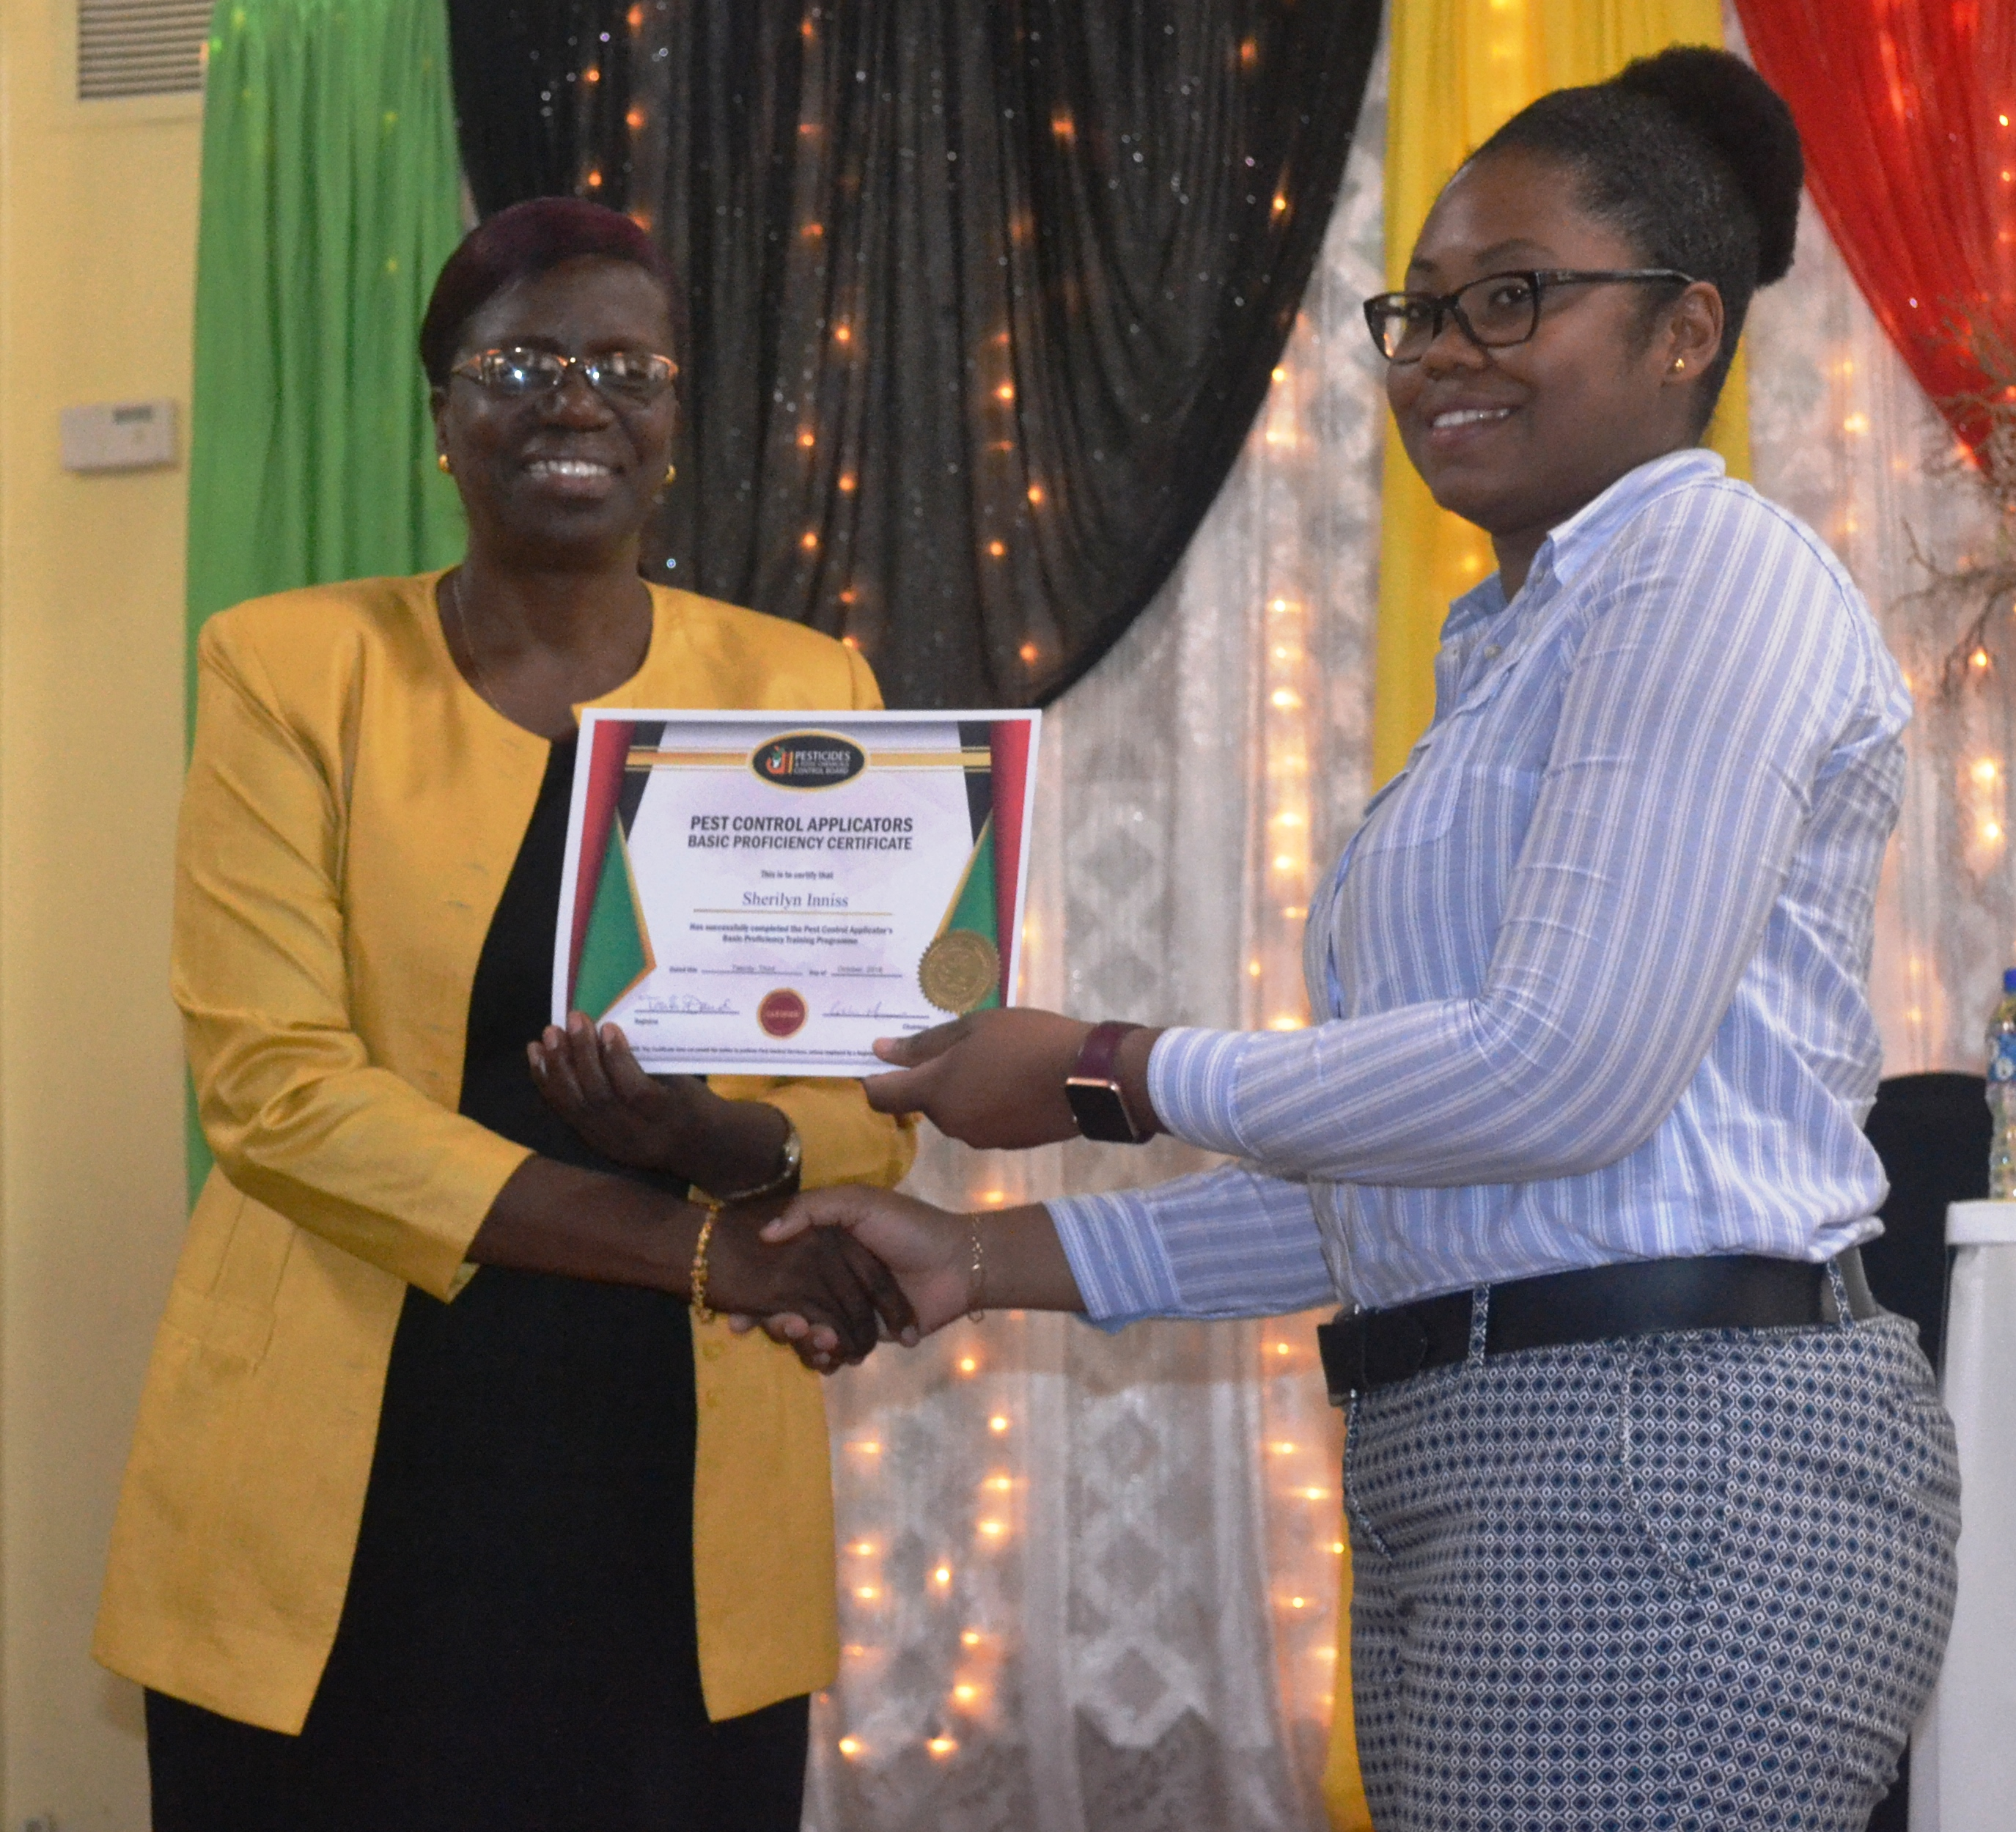 Ms. Sheriyln Innis recieving her certificate from the Permanent Secretary